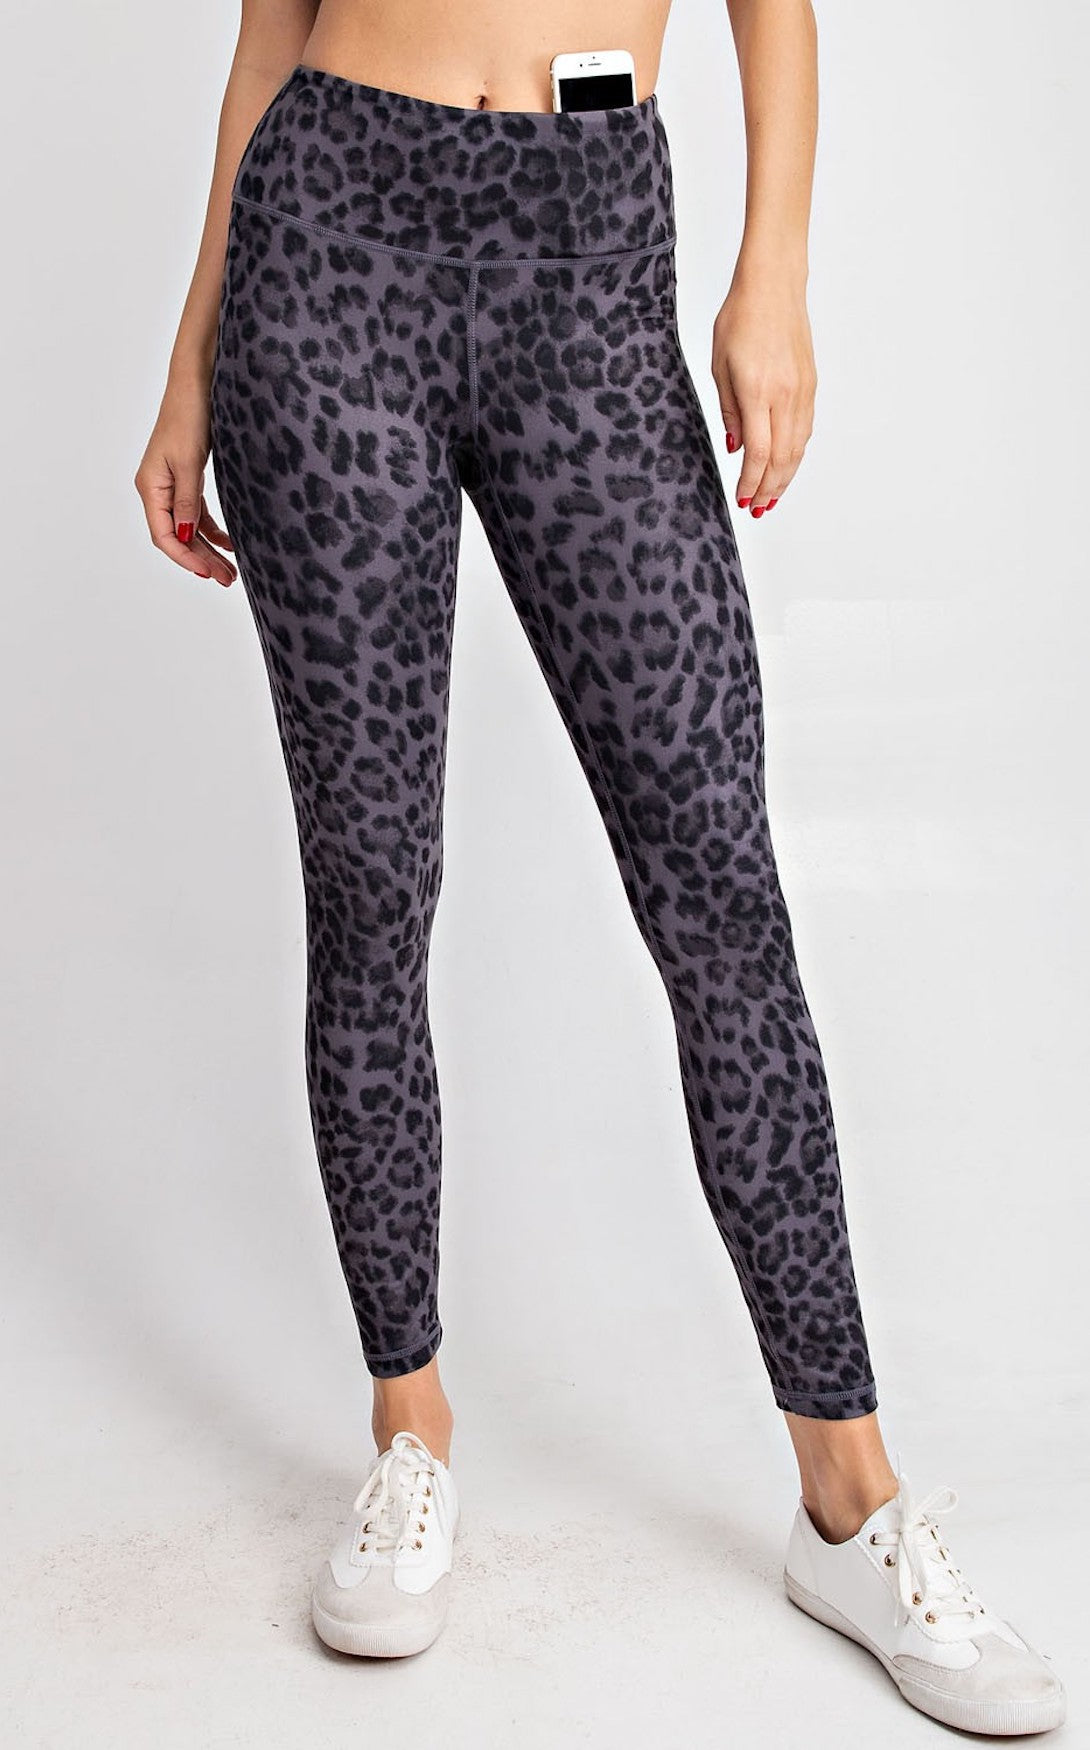 ELLE LAIN - BUTTER SOFT LEGGING DARK LEOPARD